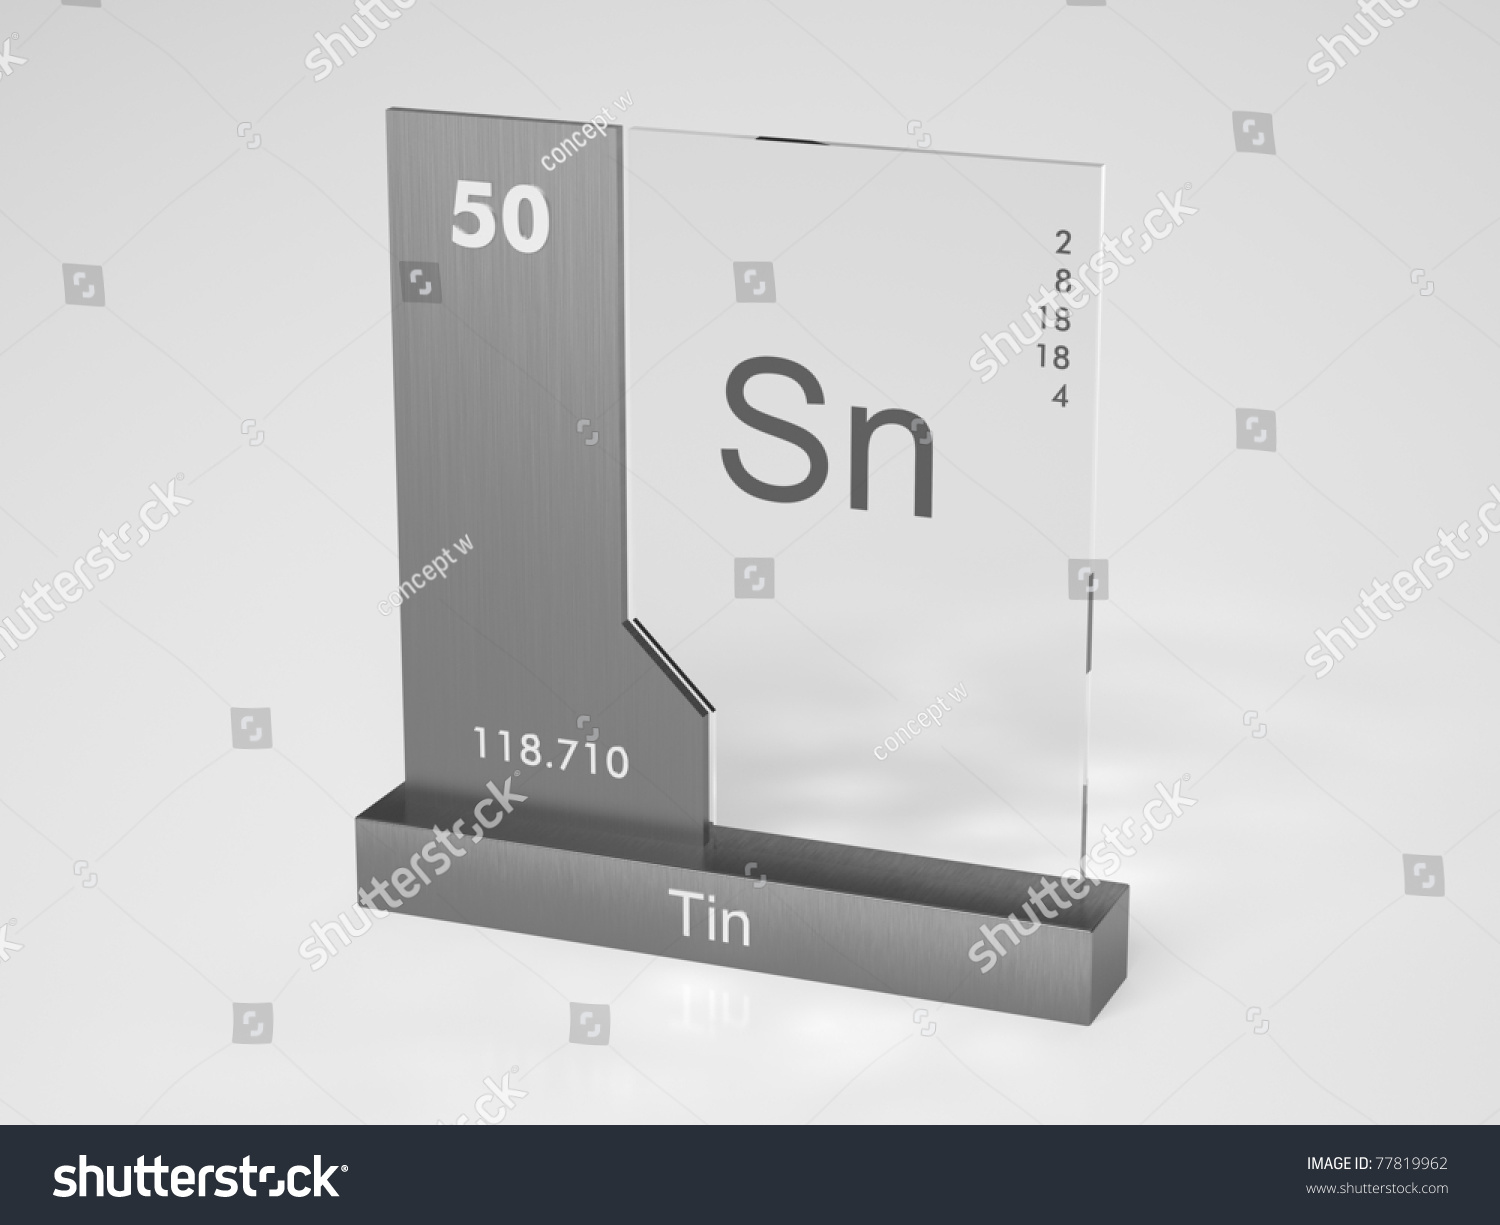 Tin Symbol Sn Chemical Element Periodic Stock Illustration 77819962